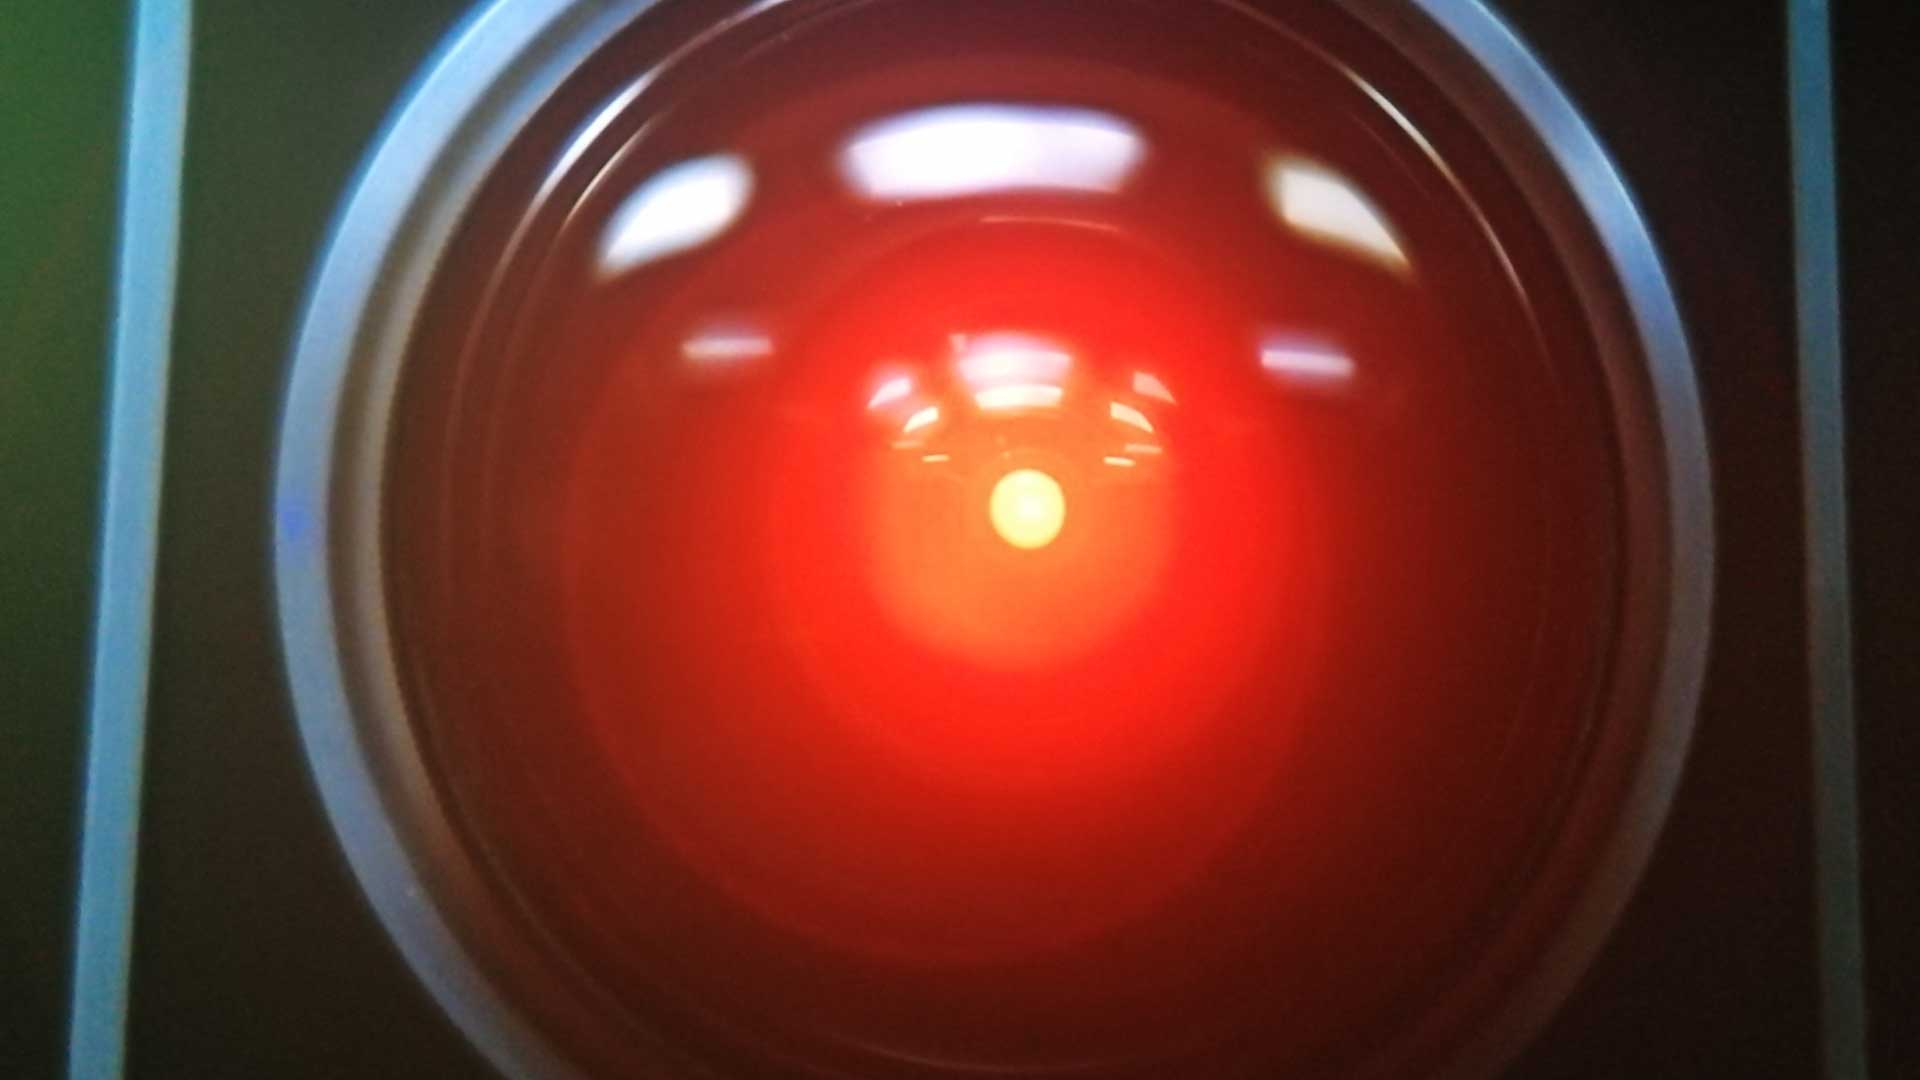 HAL 9000 from